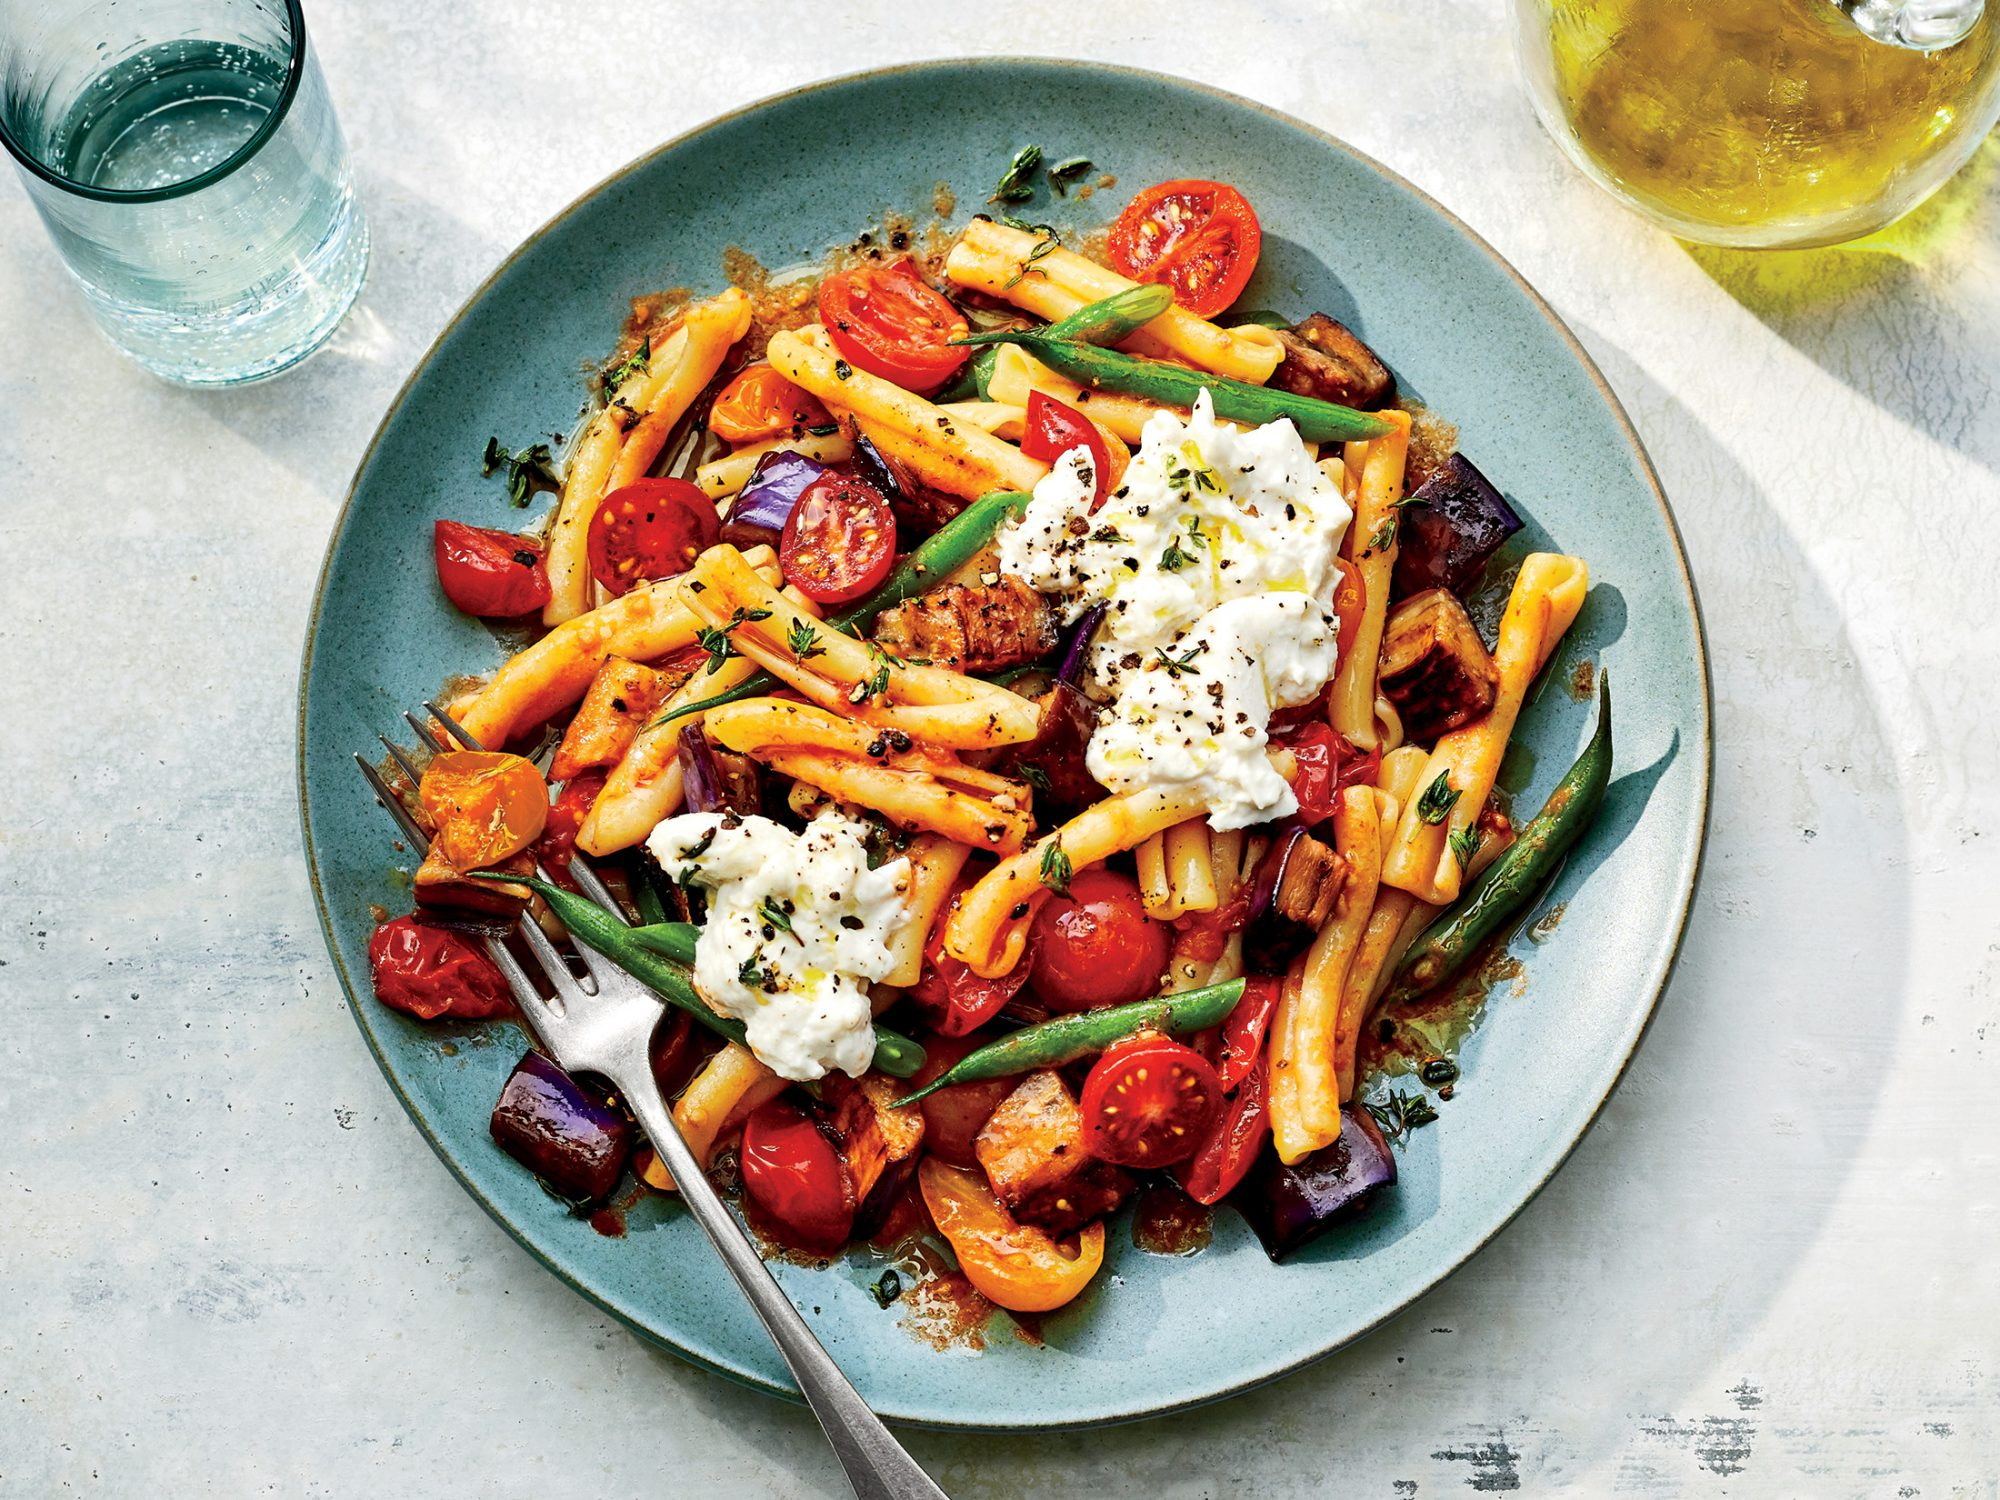 Warm Pasta Salad with Tomatoes and Eggplant